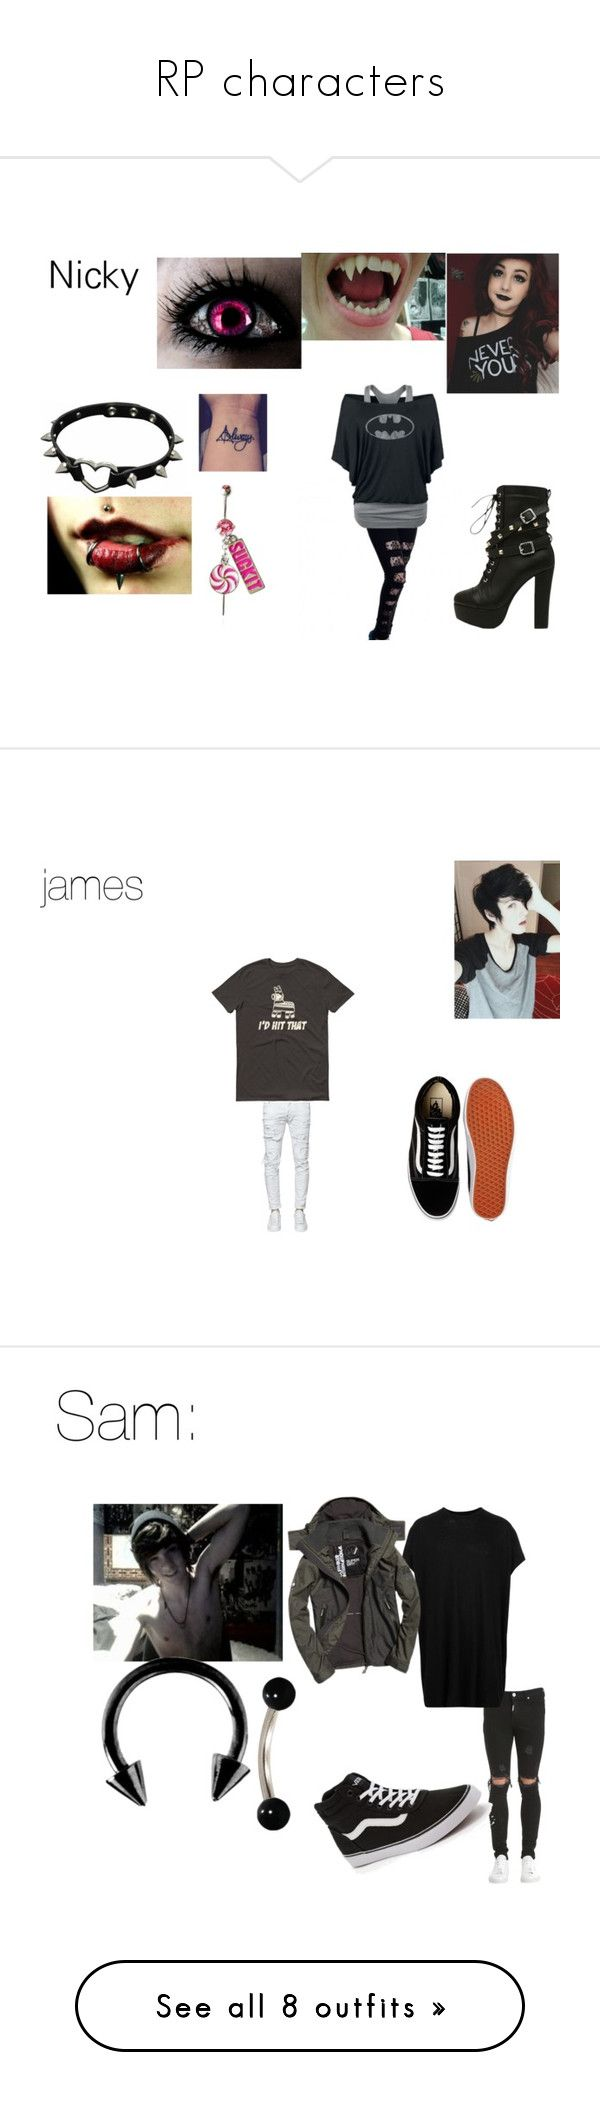 RP characters by hansen-justin on Polyvore featuring KAOS, Dsquared2, Vans, men's fashion, menswear, Represent, Lost & Found, Superdry, Urbiana and Hollister Co.